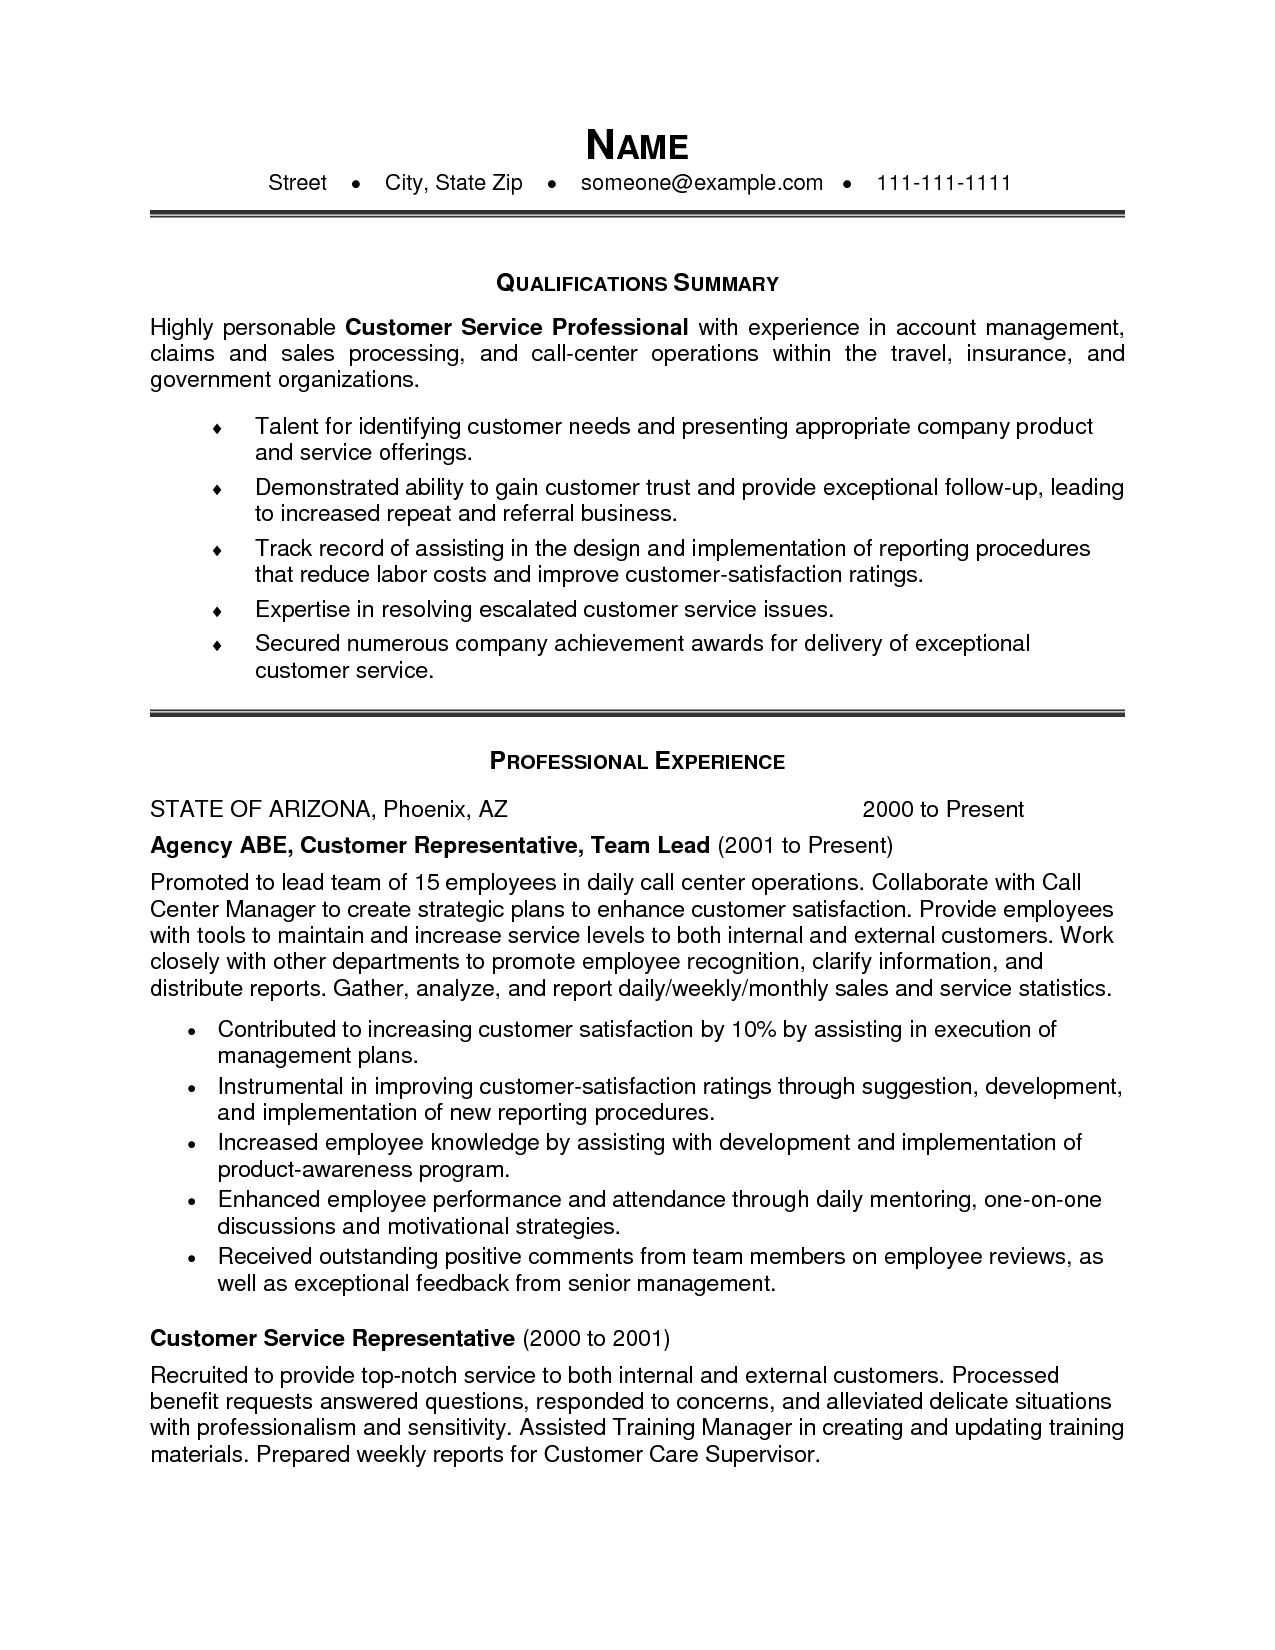 customer service resume objective or summary for linkedin review brand executive sample Resume A Objective For A Resume Customer Service